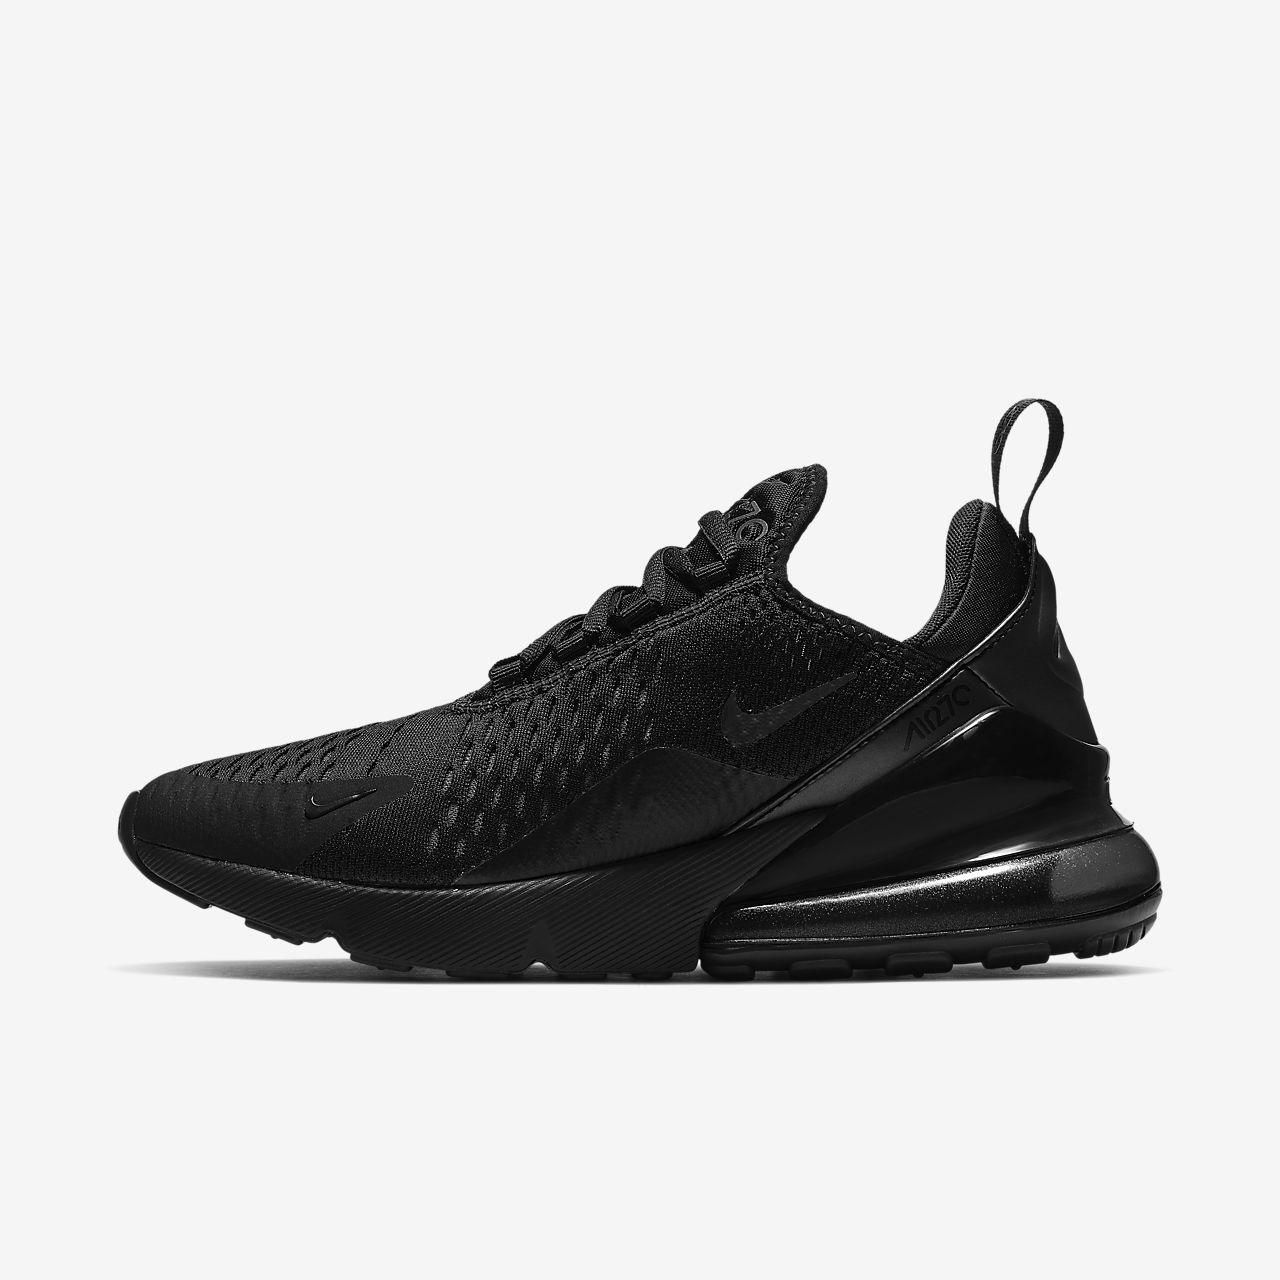 chaussures de sport 71a22 bc0e7 Nike Air Max 270 Women's Shoe